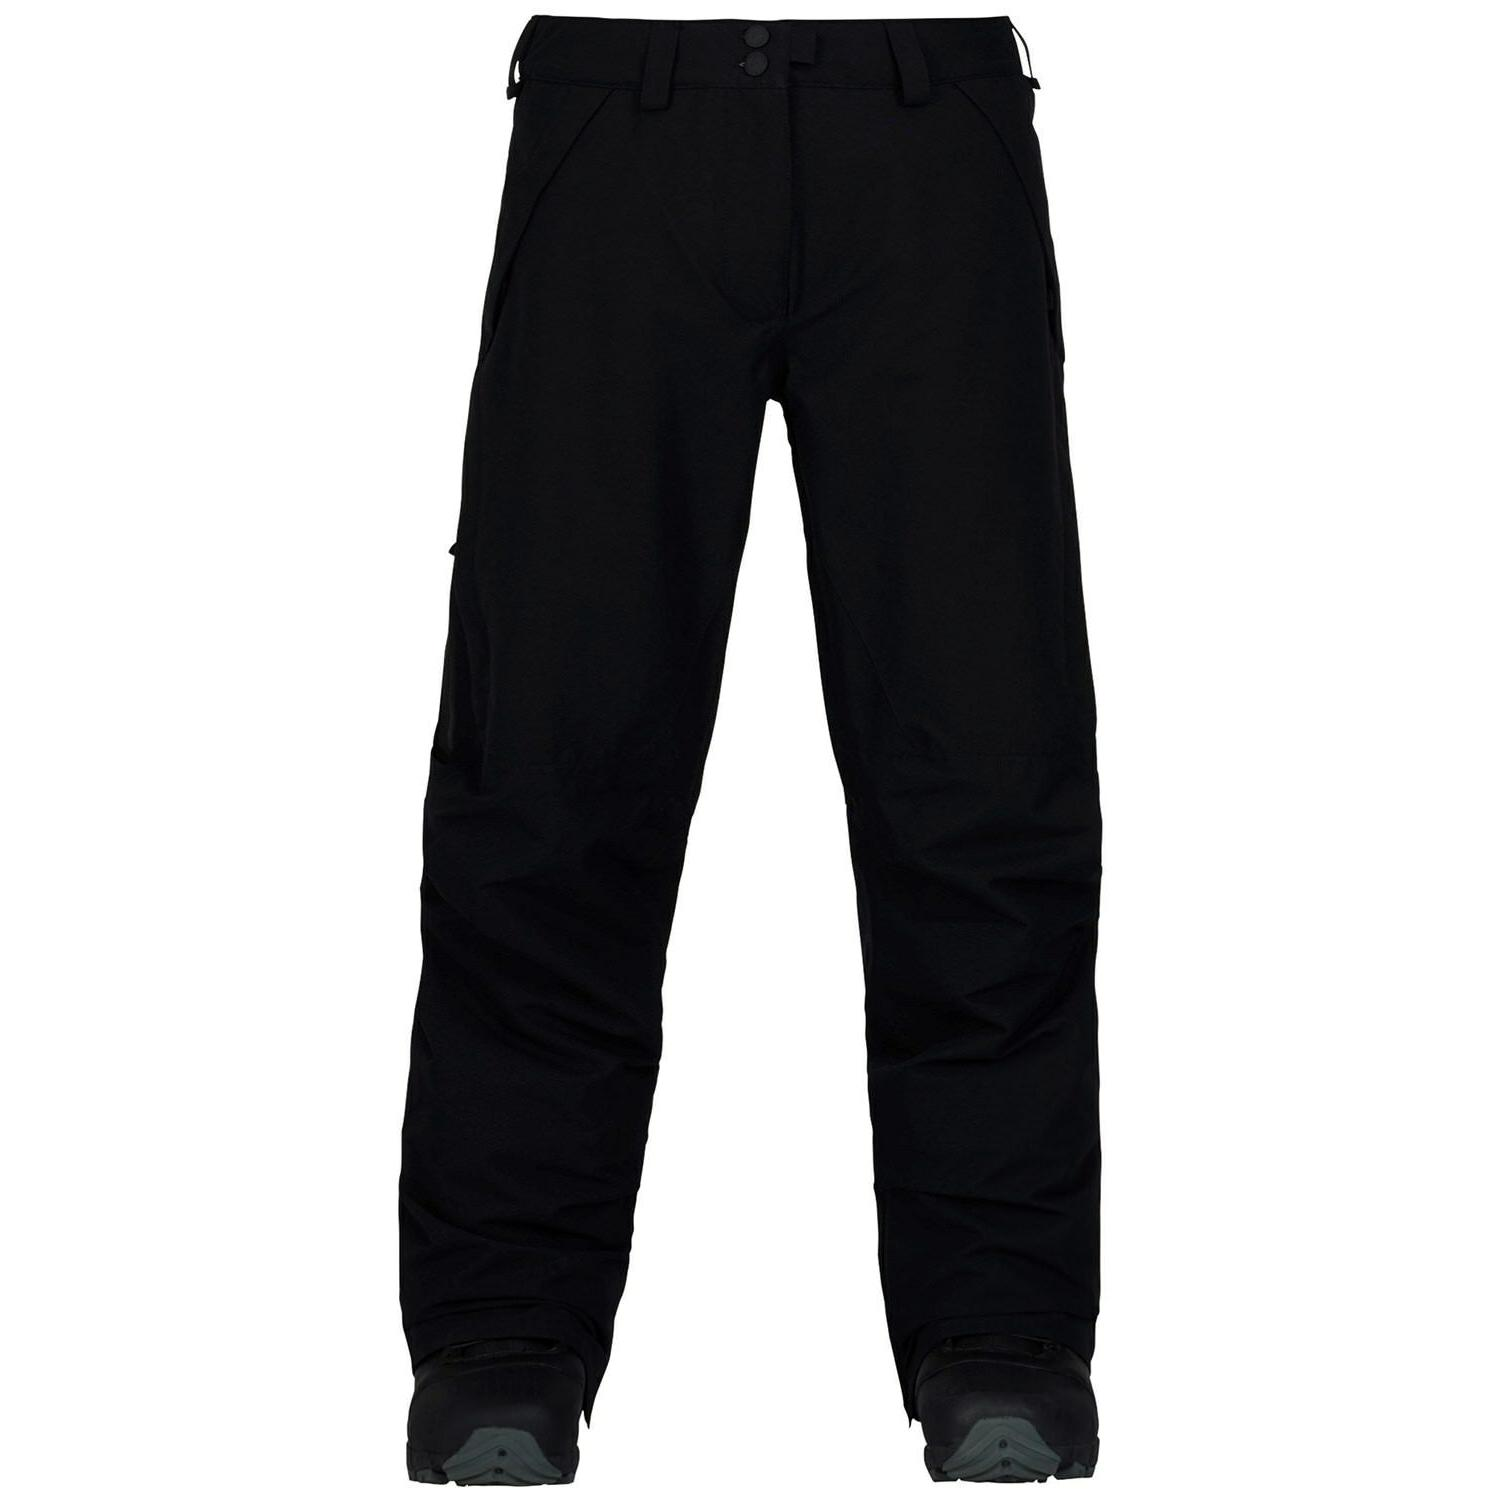 2018 nwt mens vent snow pants 200